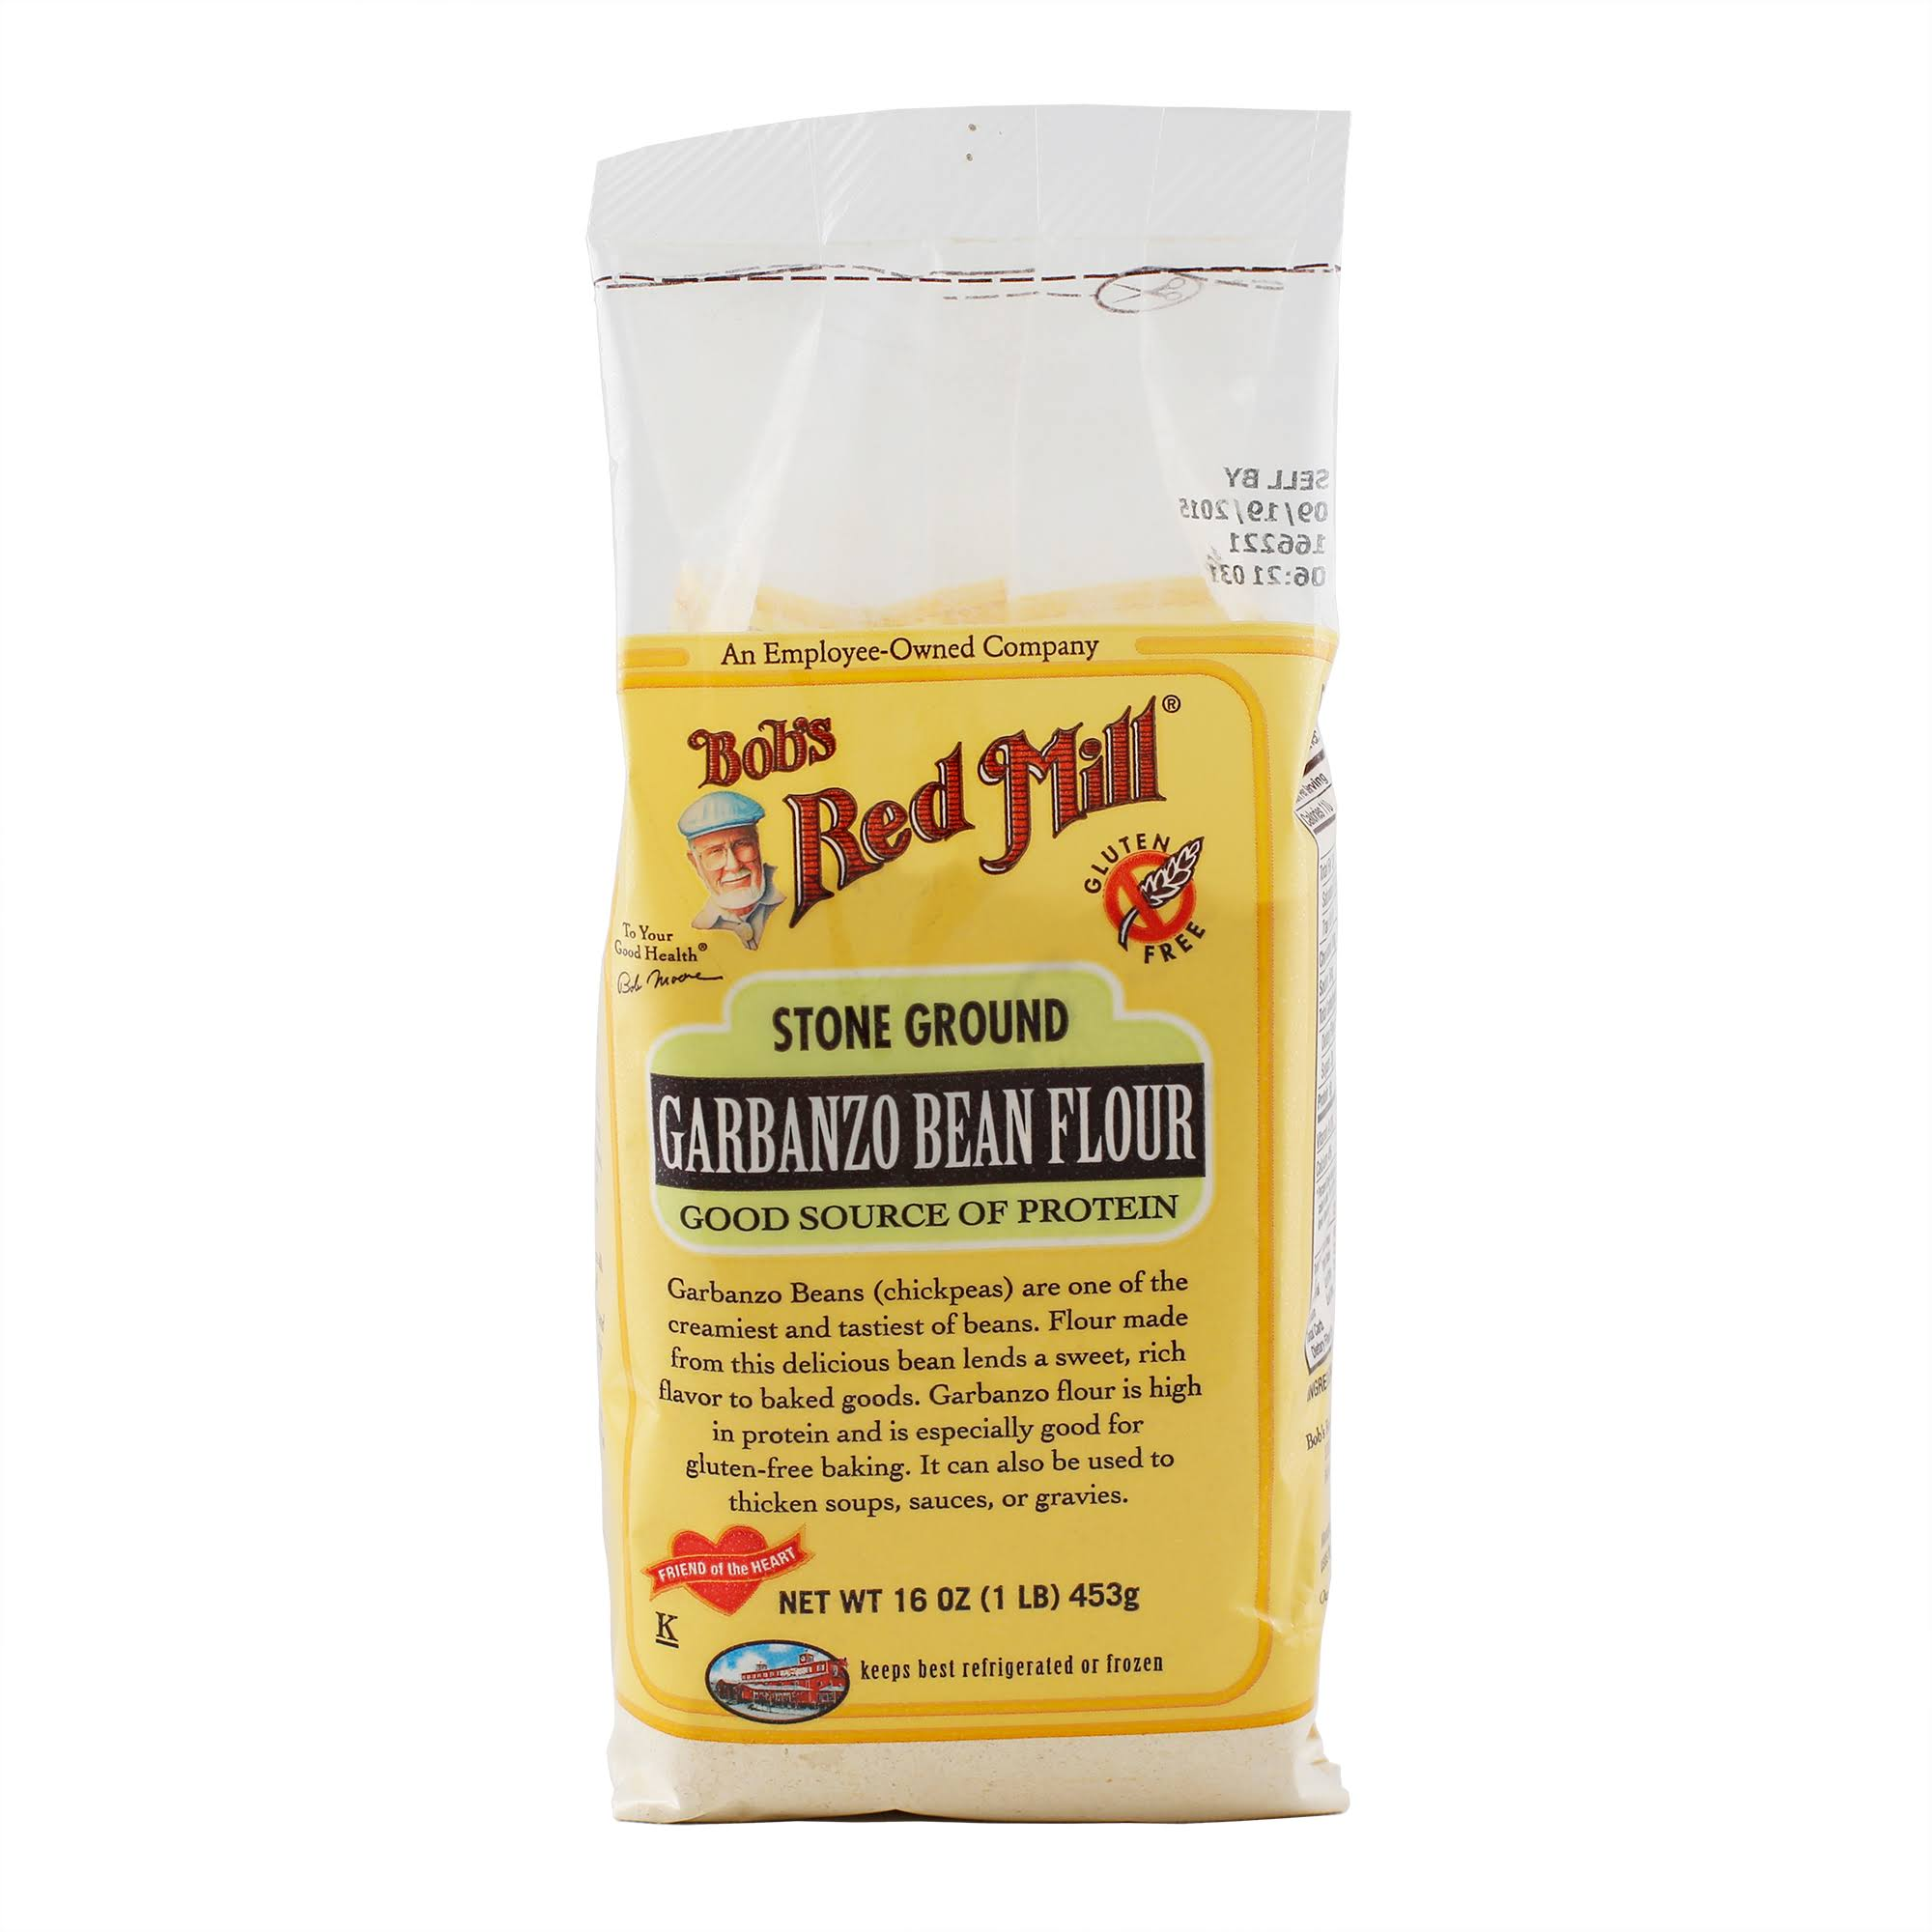 Bob's Red Mill Stone Ground Flour - Garbanzo Bean, 12oz